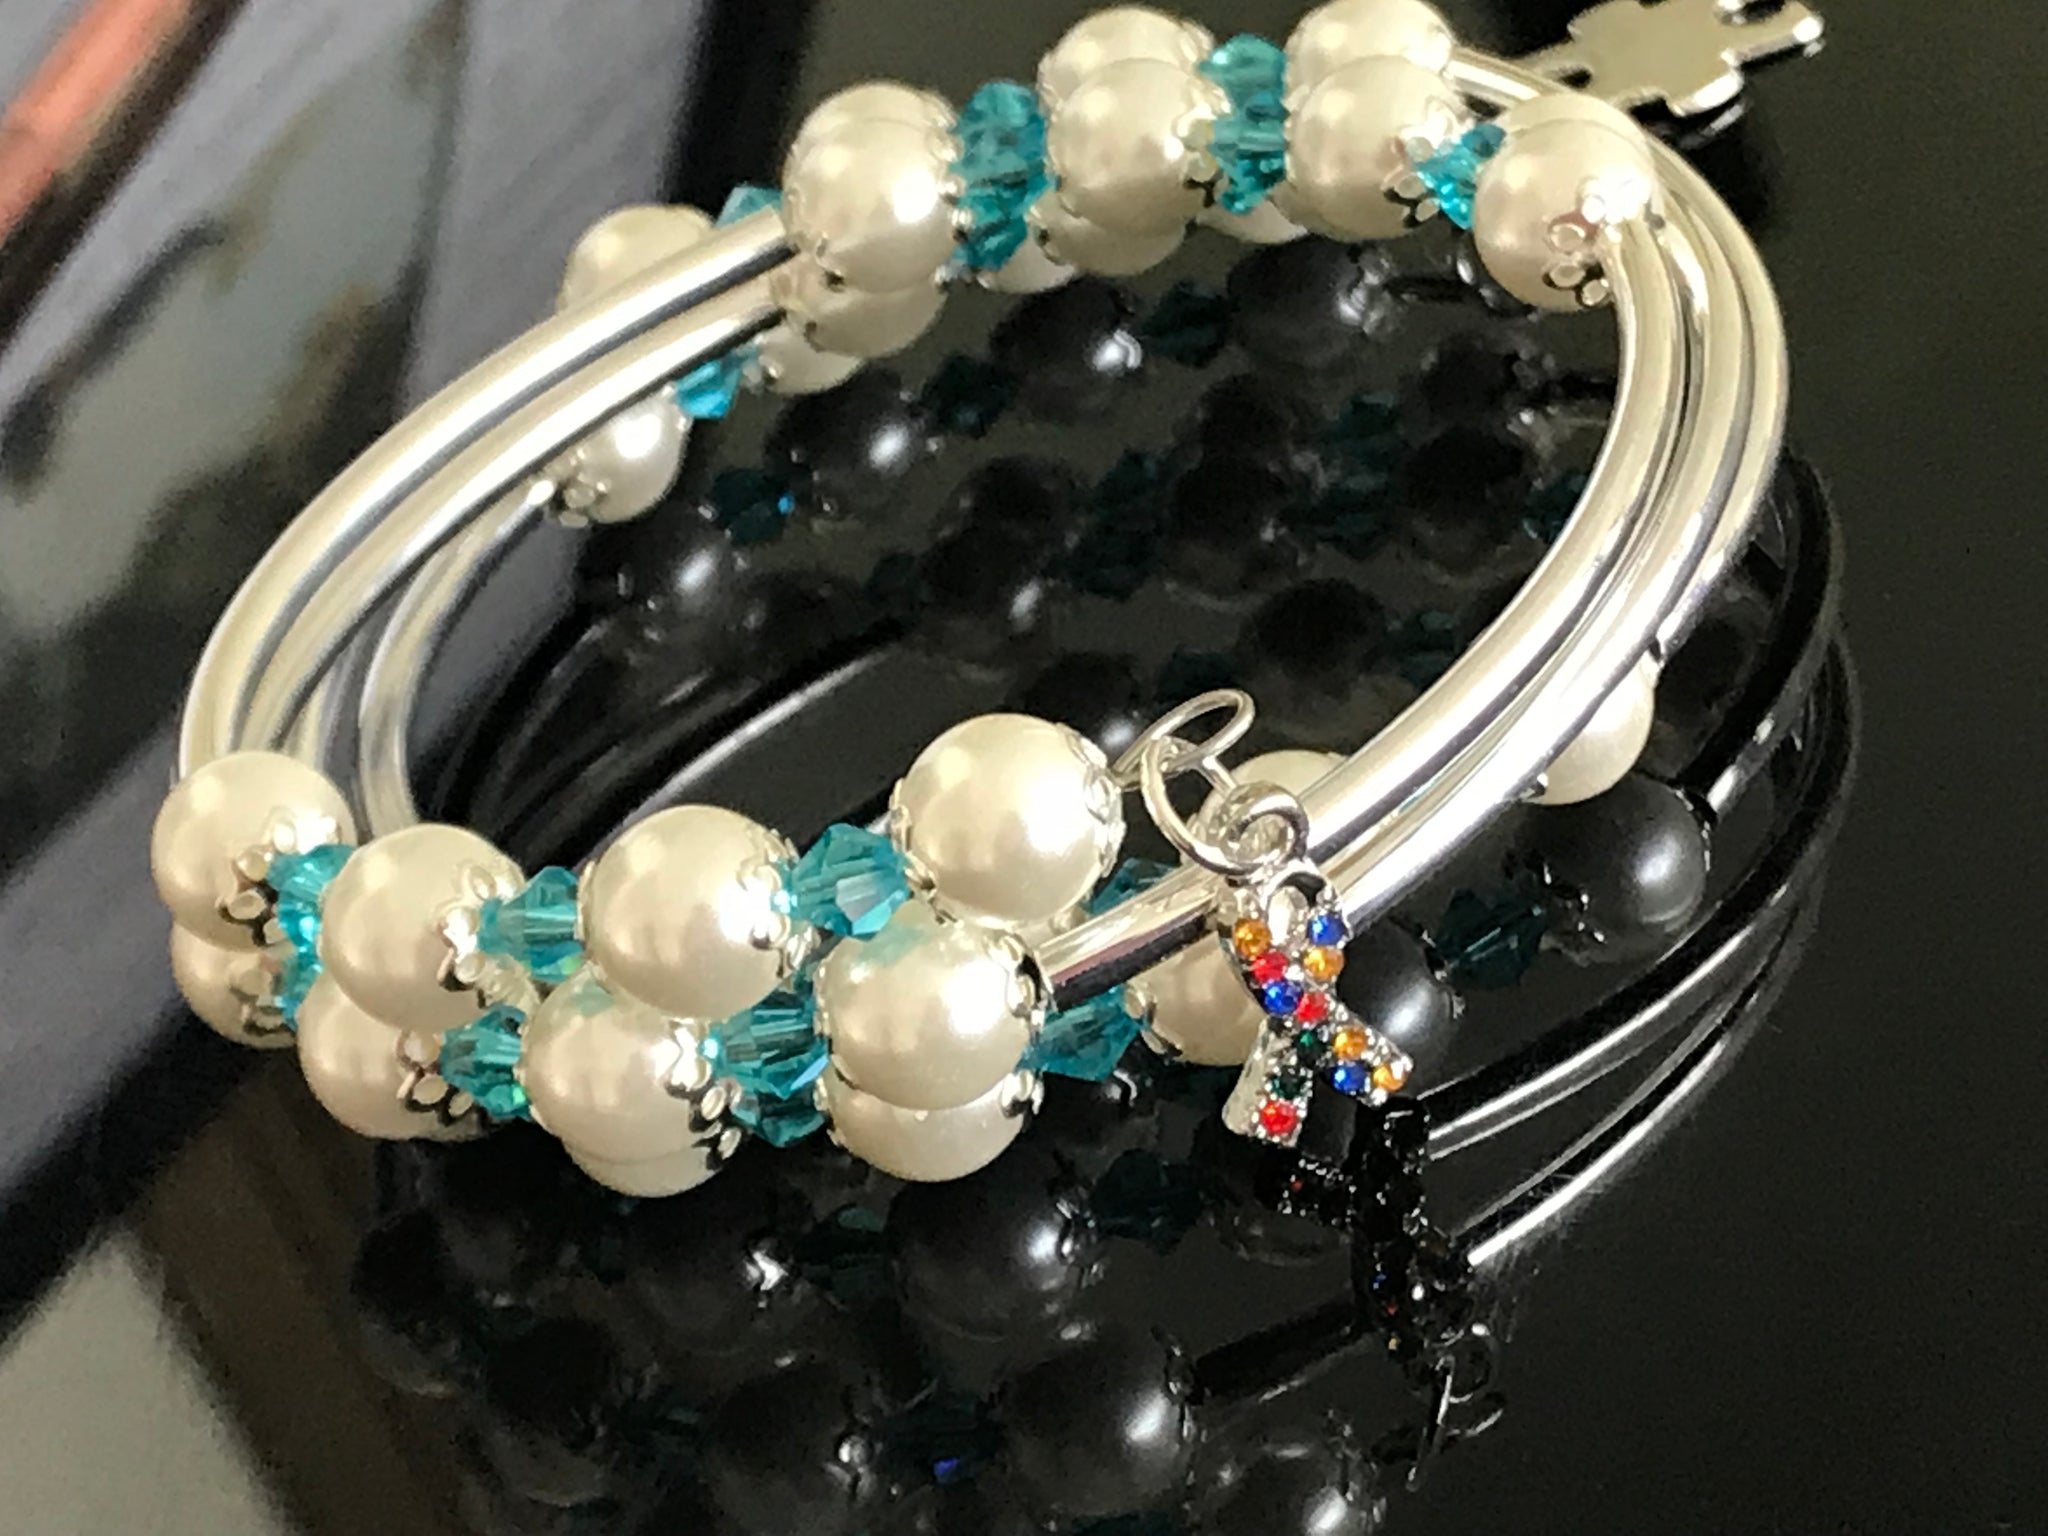 Autism awareness white glass pearls, Swarovski with silver noodle beads on a memory wire bracelet